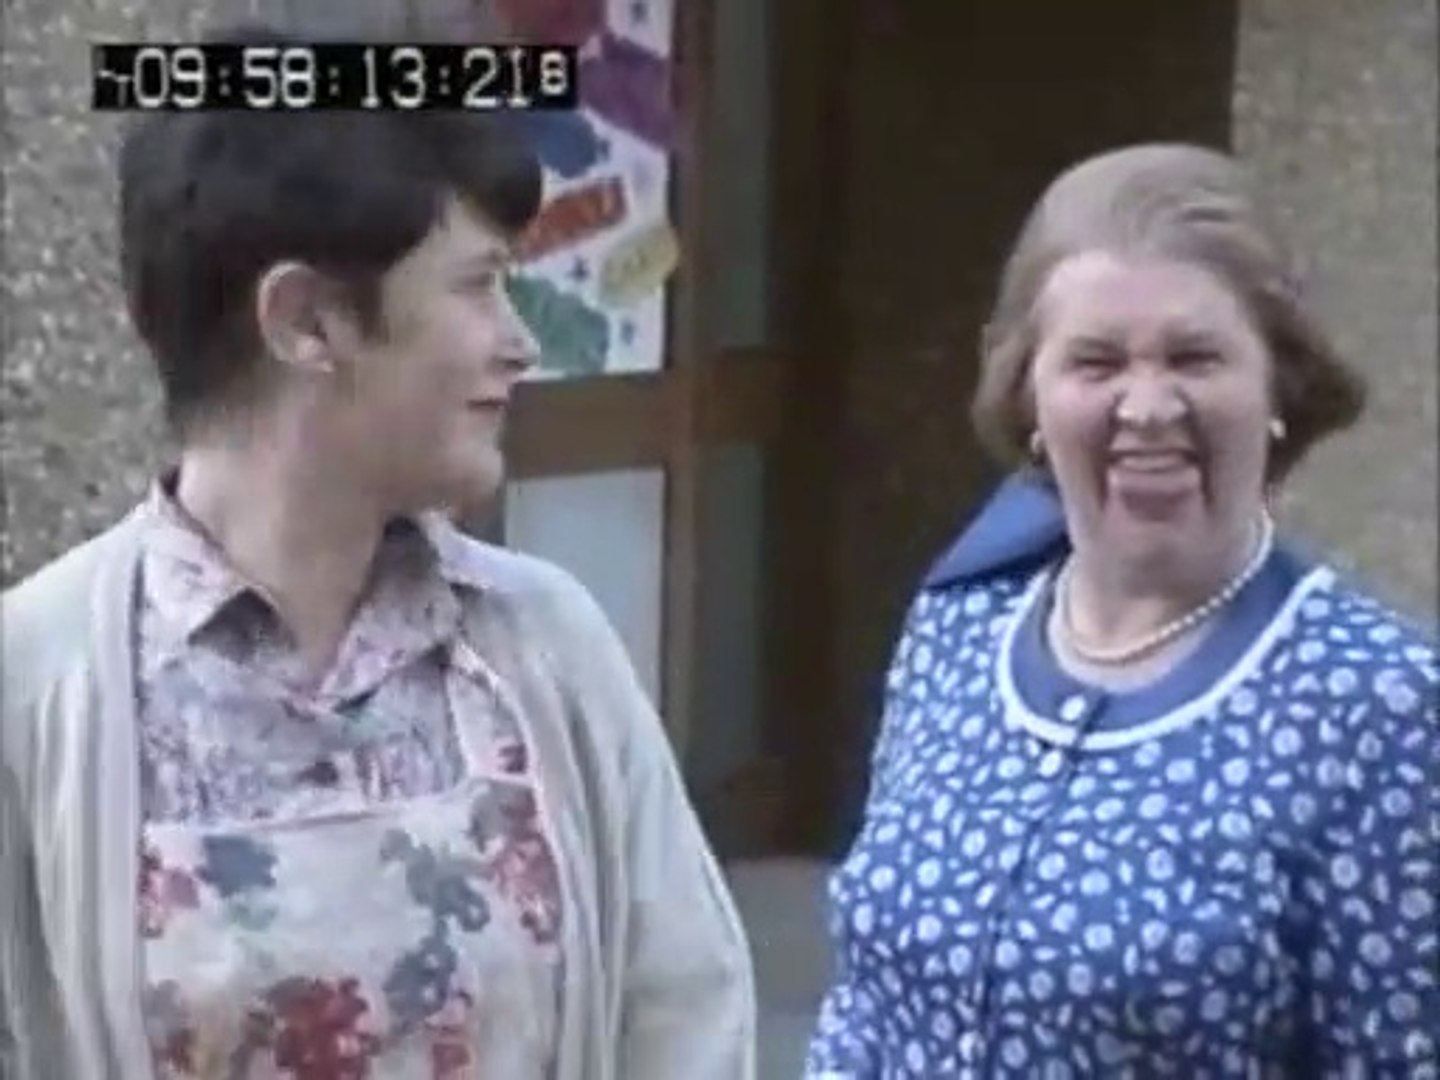 Keeping Up Appearances Outakes Bloopers Patricia Routledge Geoffrey Hughes Judy Cornwell Josephine Tewson Video Dailymotion Josephine tewson's height is unknown & weight is not available now. keeping up appearances outakes bloopers patricia routledge geoffrey hughes judy cornwell josephine tewson